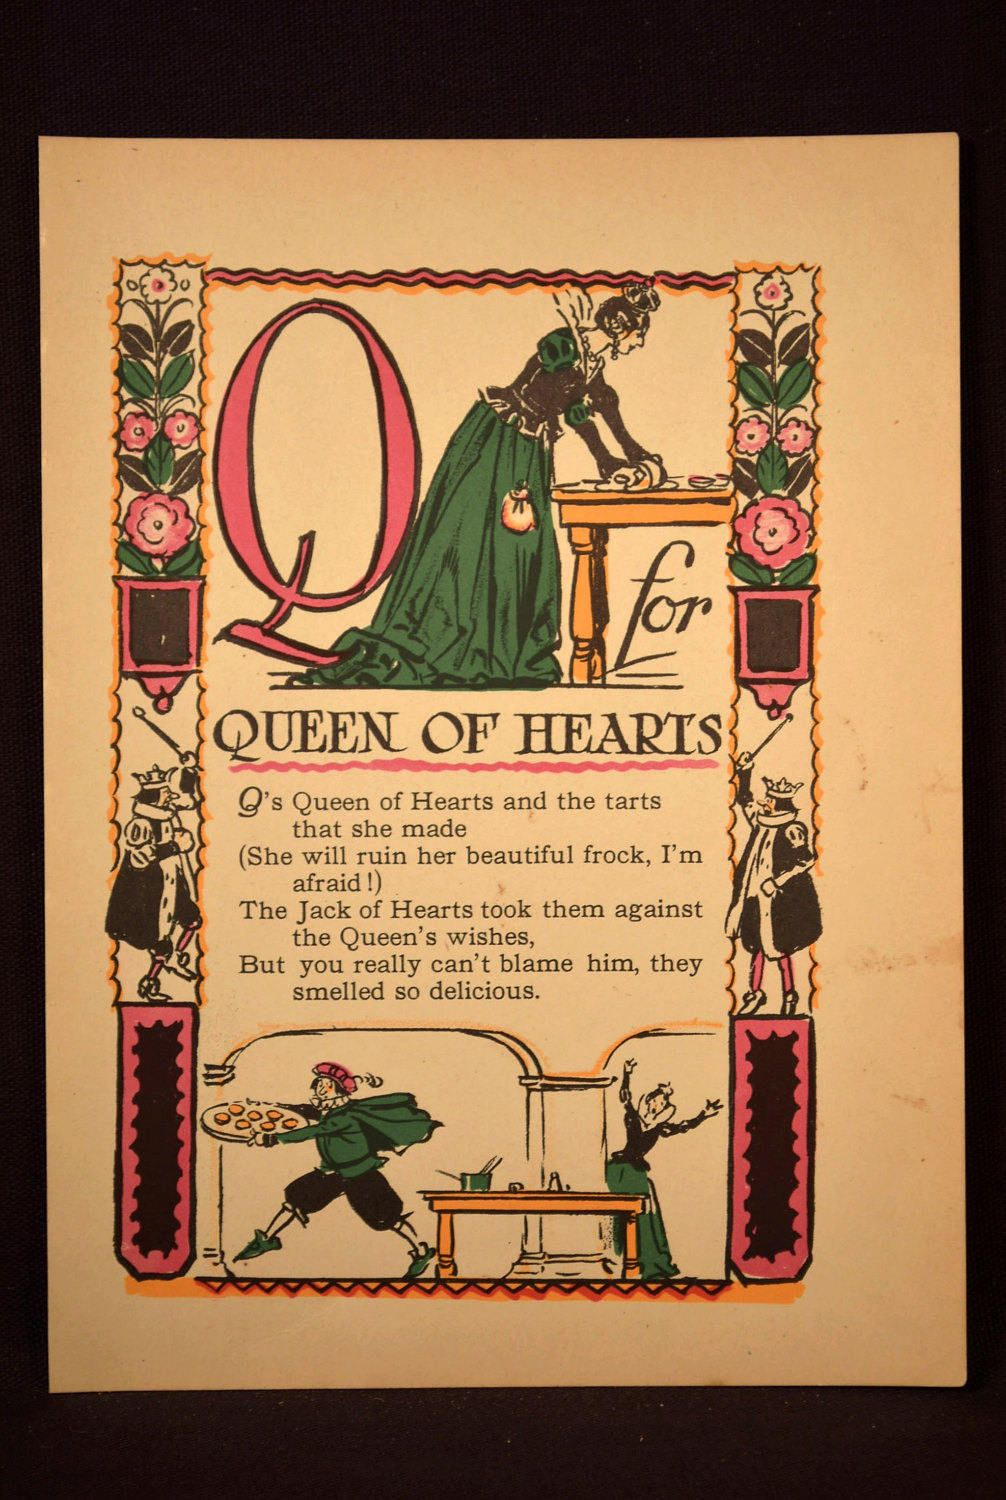 Letter Q Print Childrens Print Kids Wall Art Decor Queen of Hearts